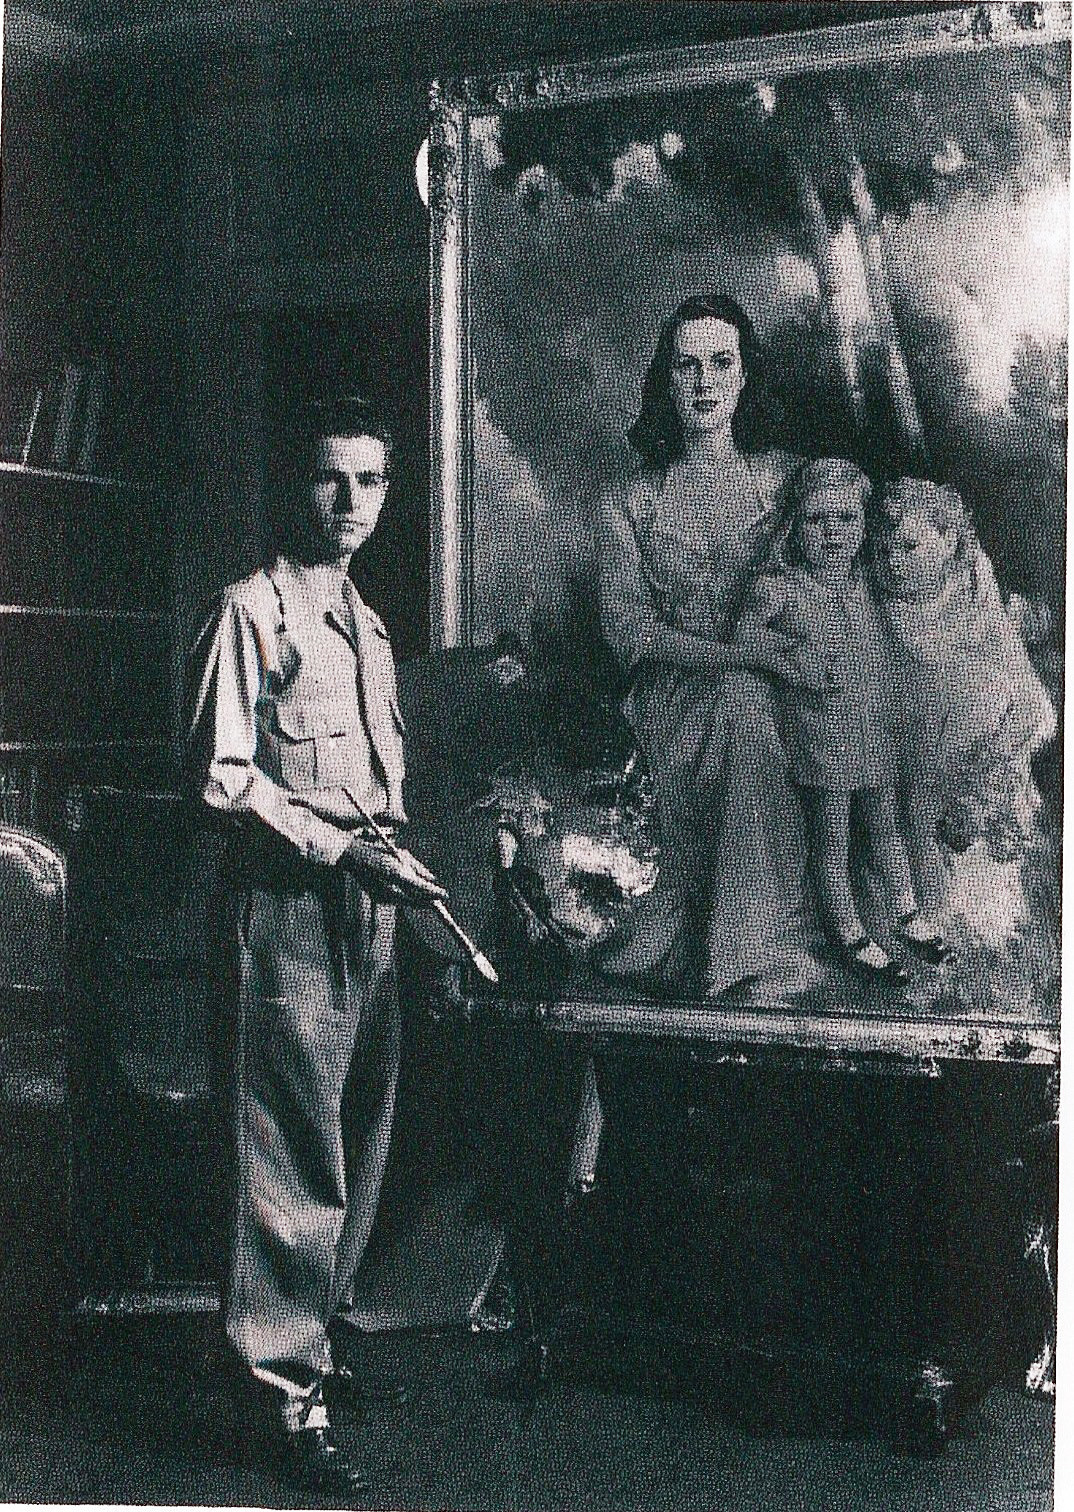 Artist Charles Mason Crowson, grandson of C.T. Mason, is pictured.